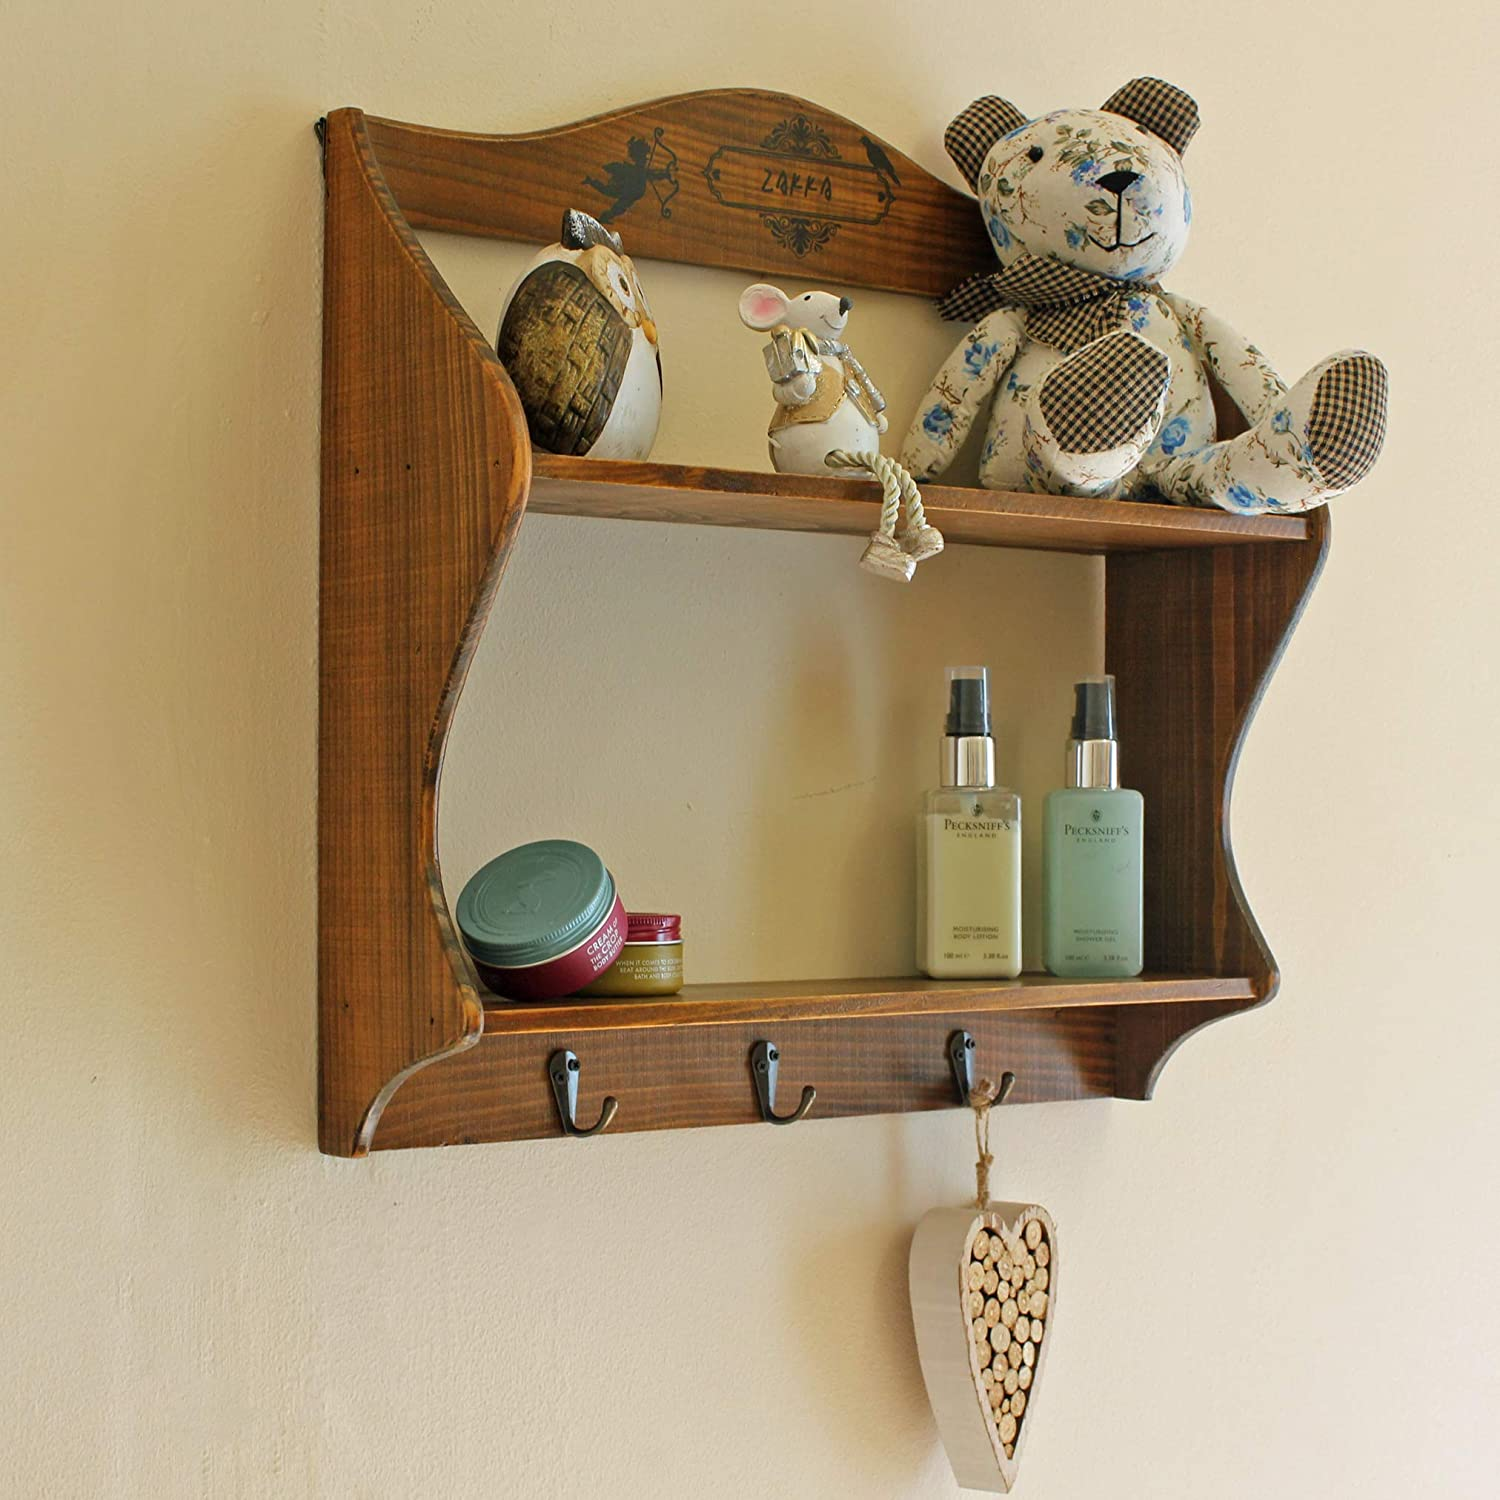 2 Tier Wall Shelf Hanging Hooks Wooden Decor Storage Shelves Hanger Rack Aged Rustic Finish (Dark Brown) Dark Brown